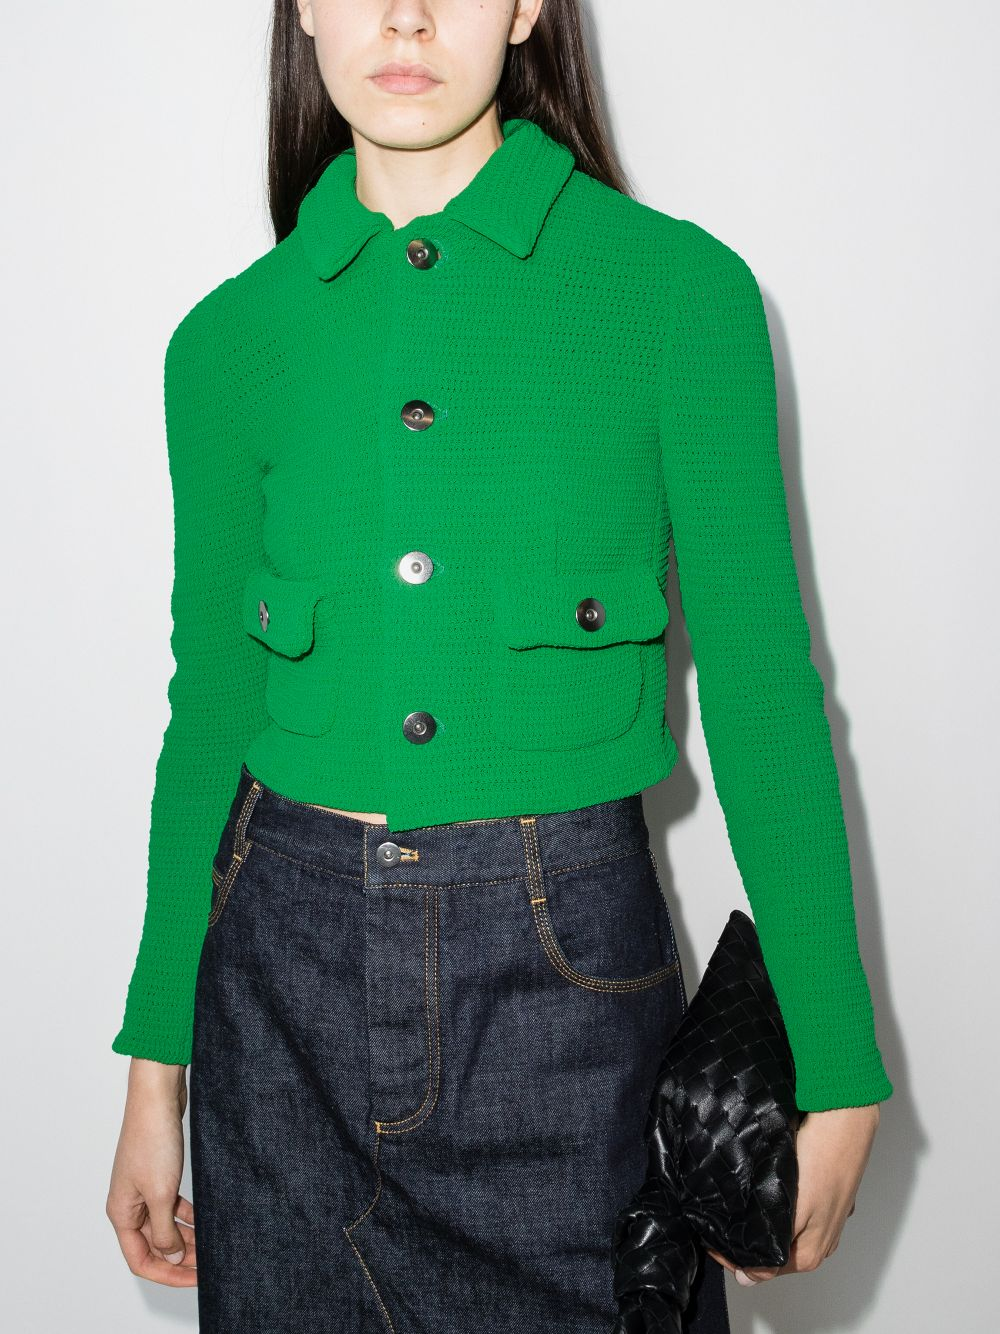 Parakeet green cotton cropped buttoned cardigan jacket  BOTTEGA VENETA |  | 656076-V0S904809